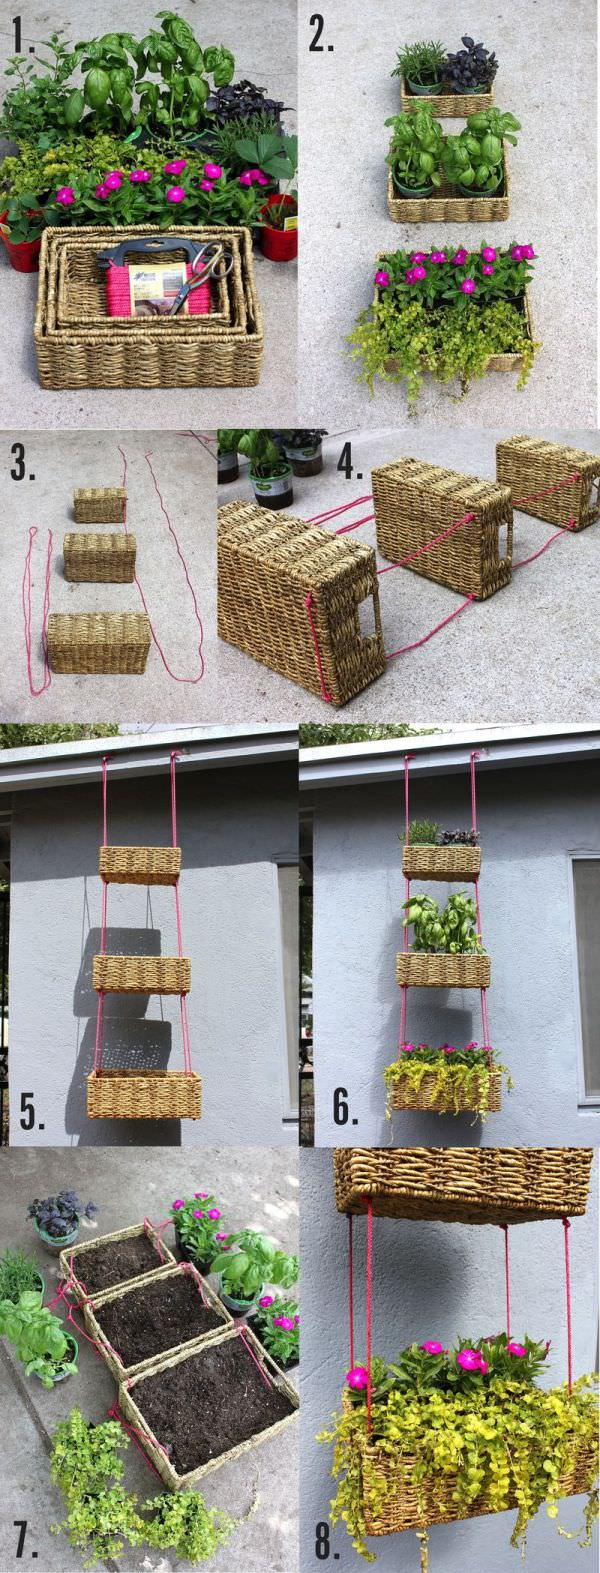 Diy: Upcycled Basket Into Hanging Garden - flowers-plants-planters